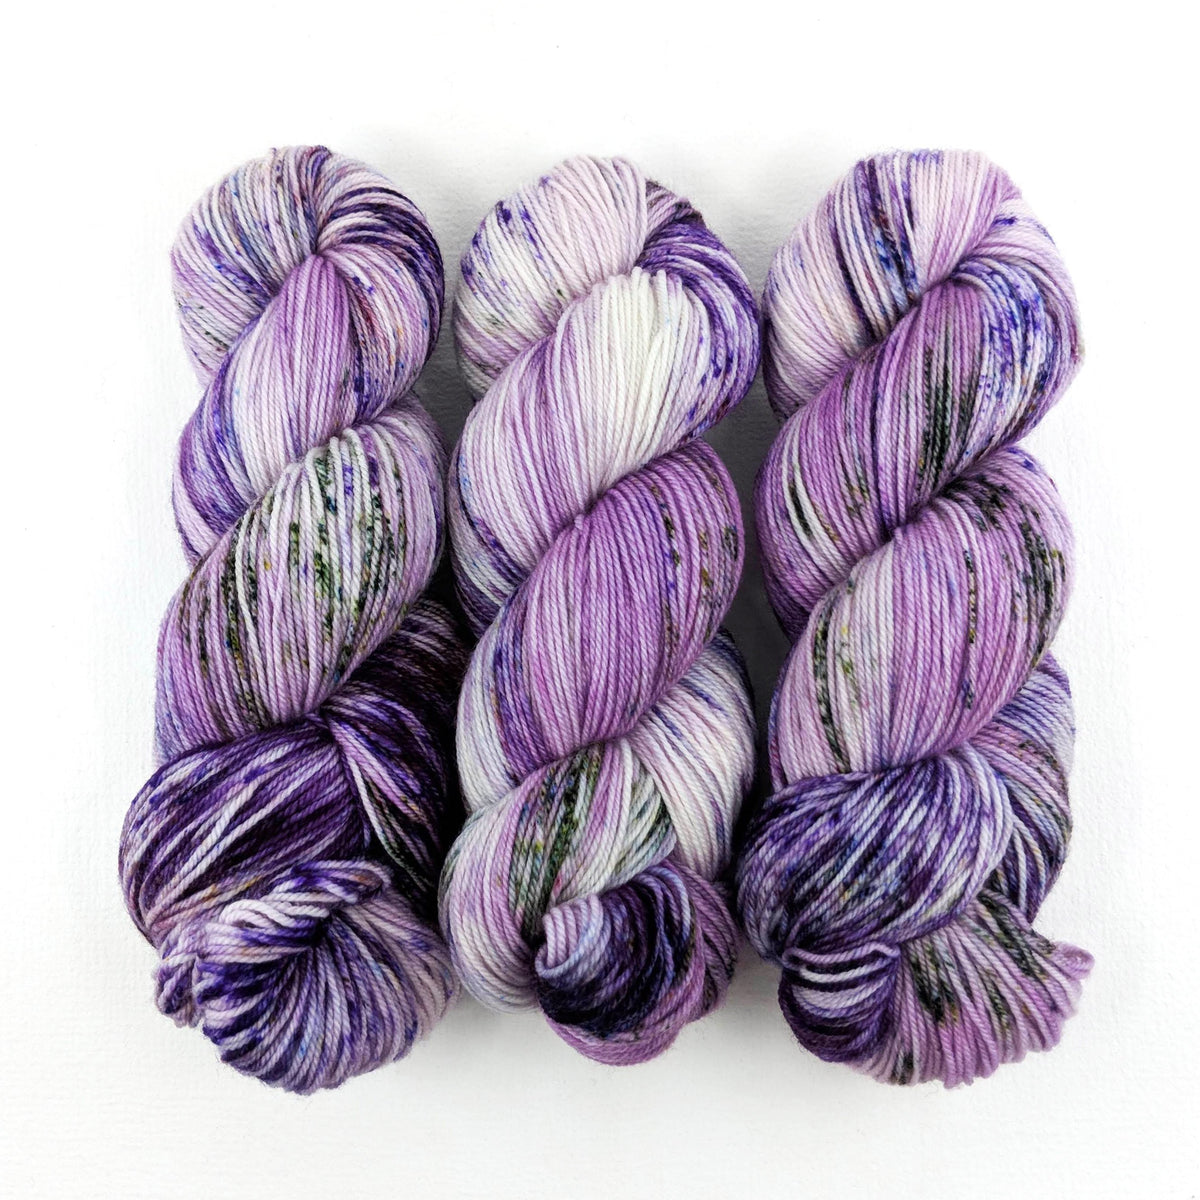 Wild Orchid - Revival Fingering - Dyed Stock